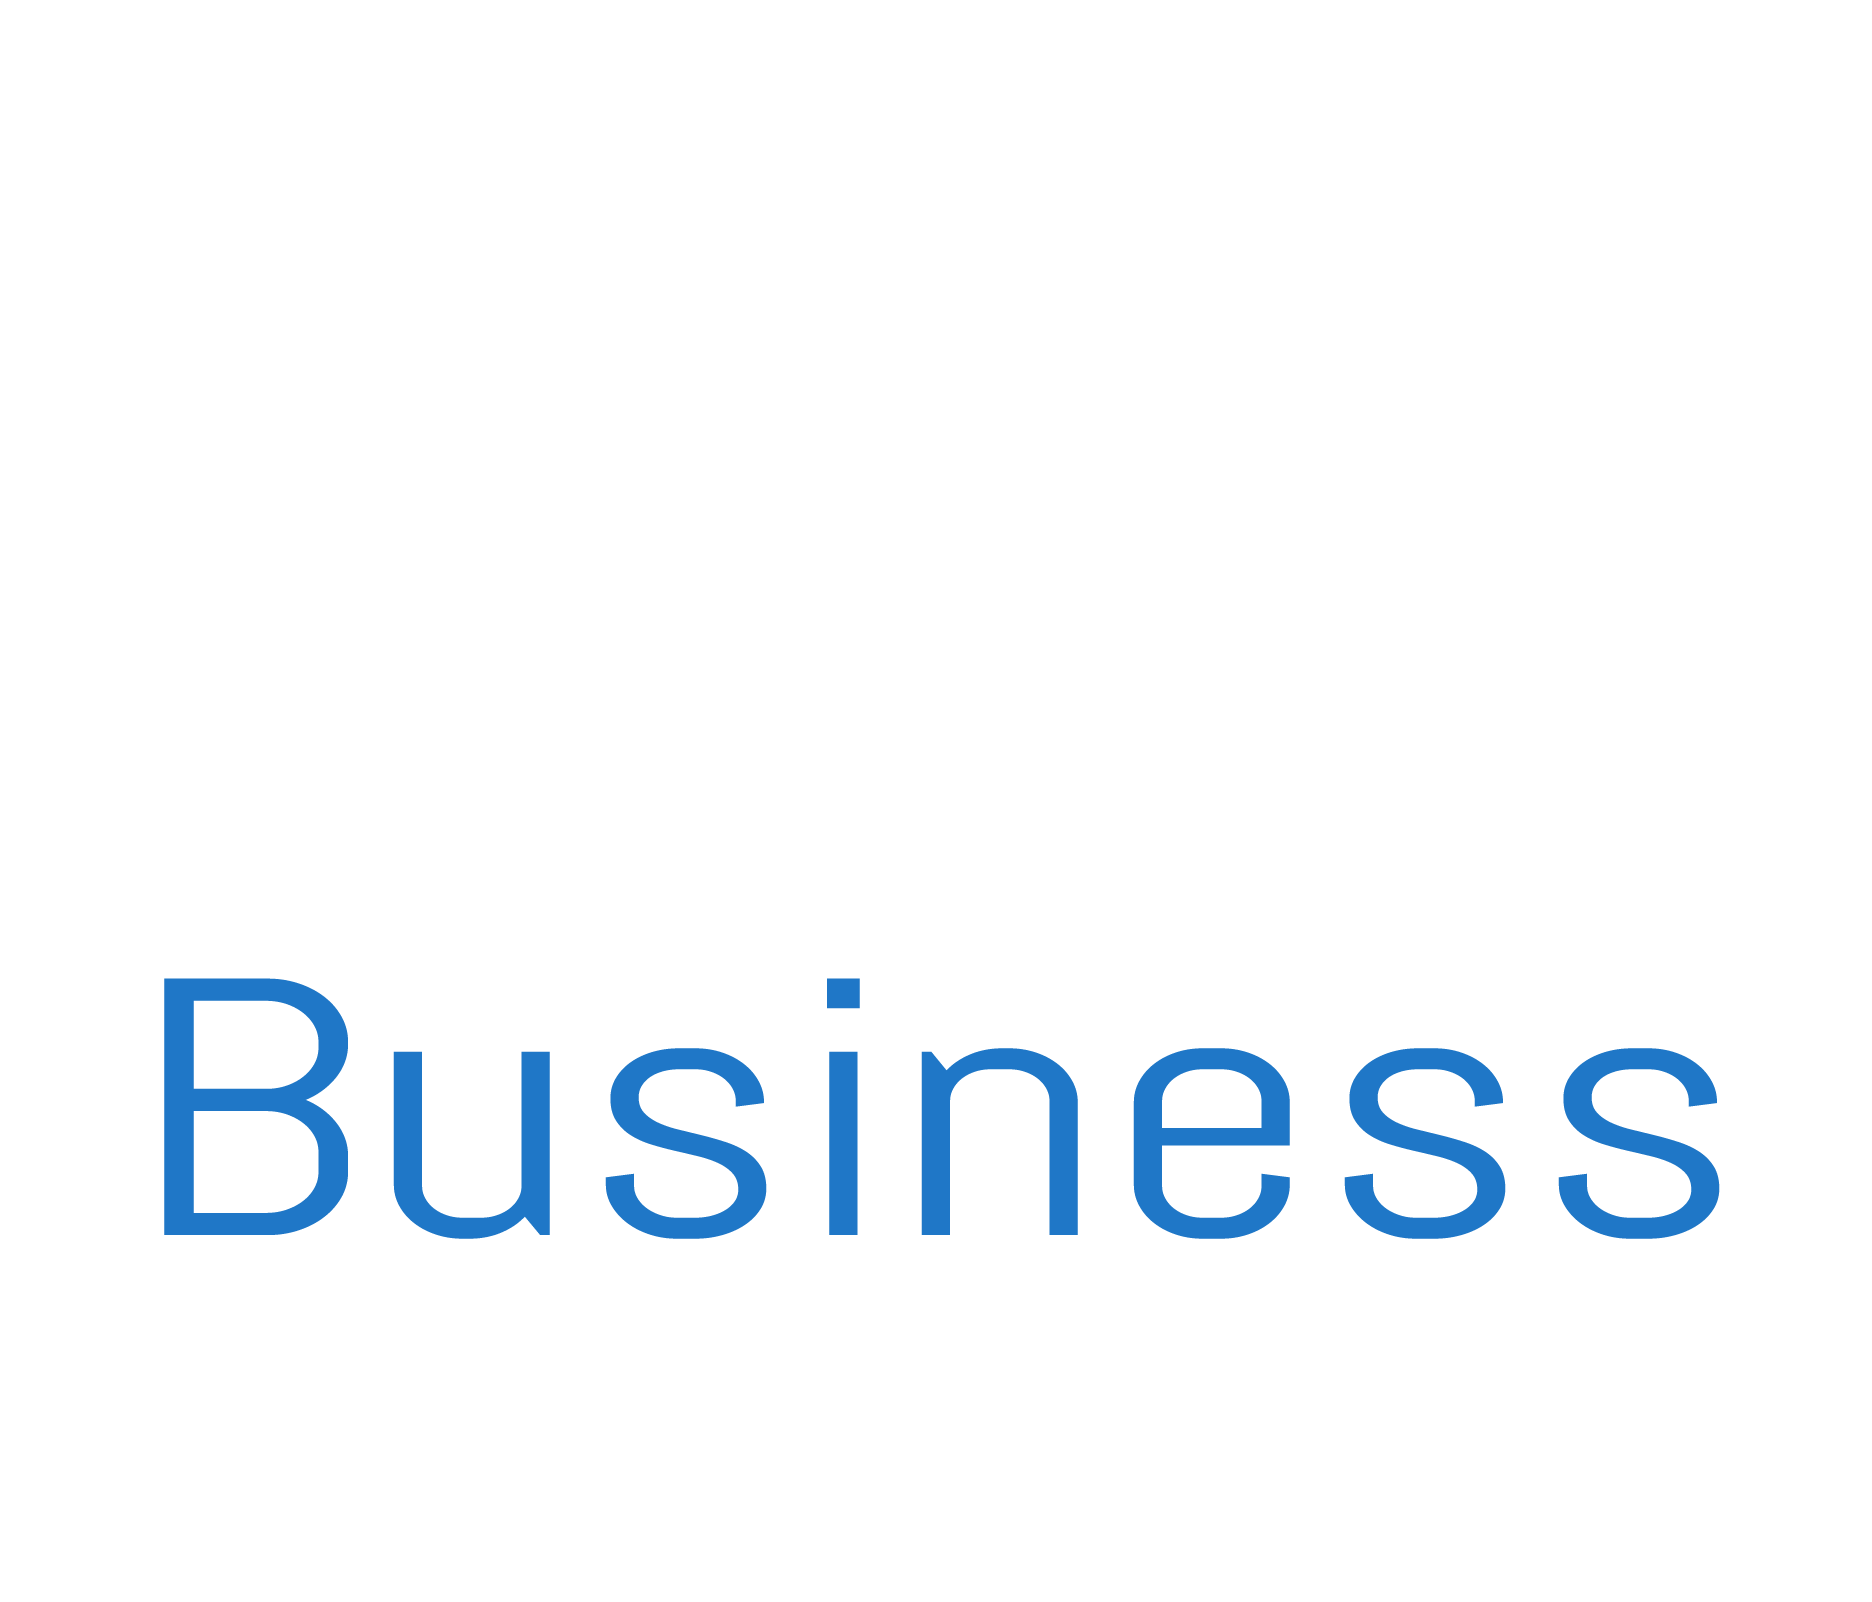 Business Brokerage Services